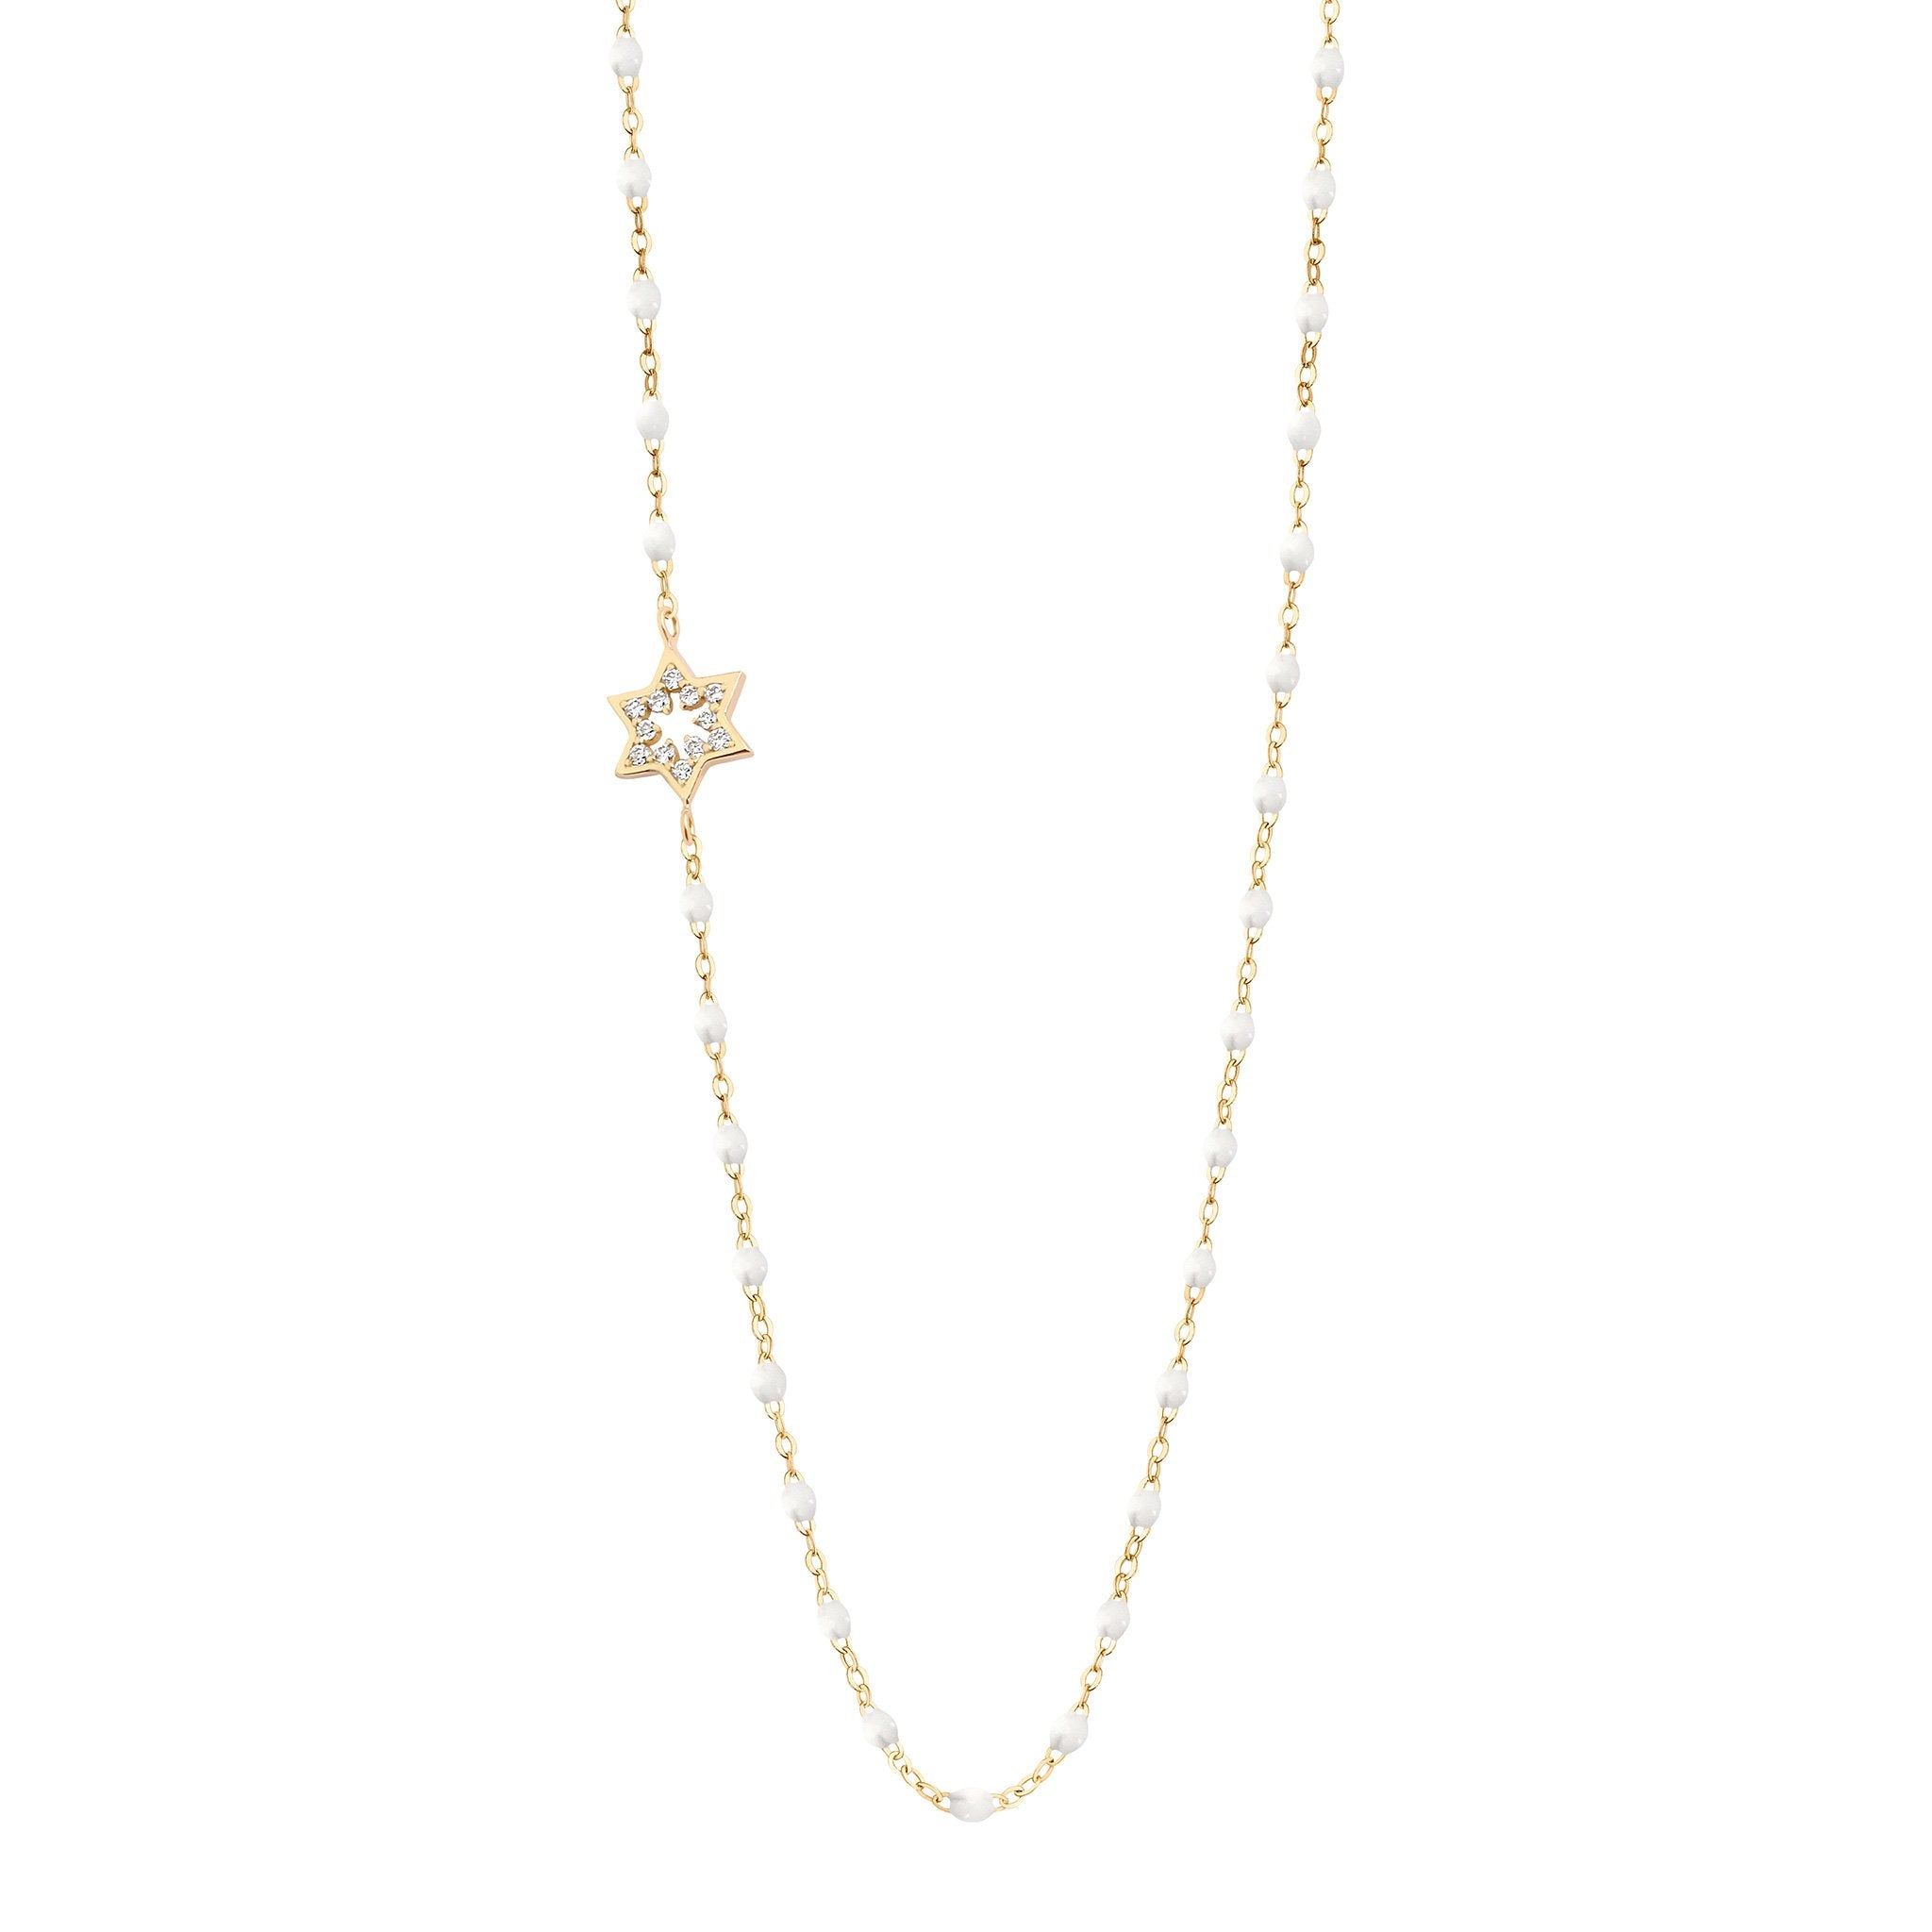 Gigi Clozeau - Star of David Classic Gigi White diamonds necklace, Yellow Gold, 16.5""